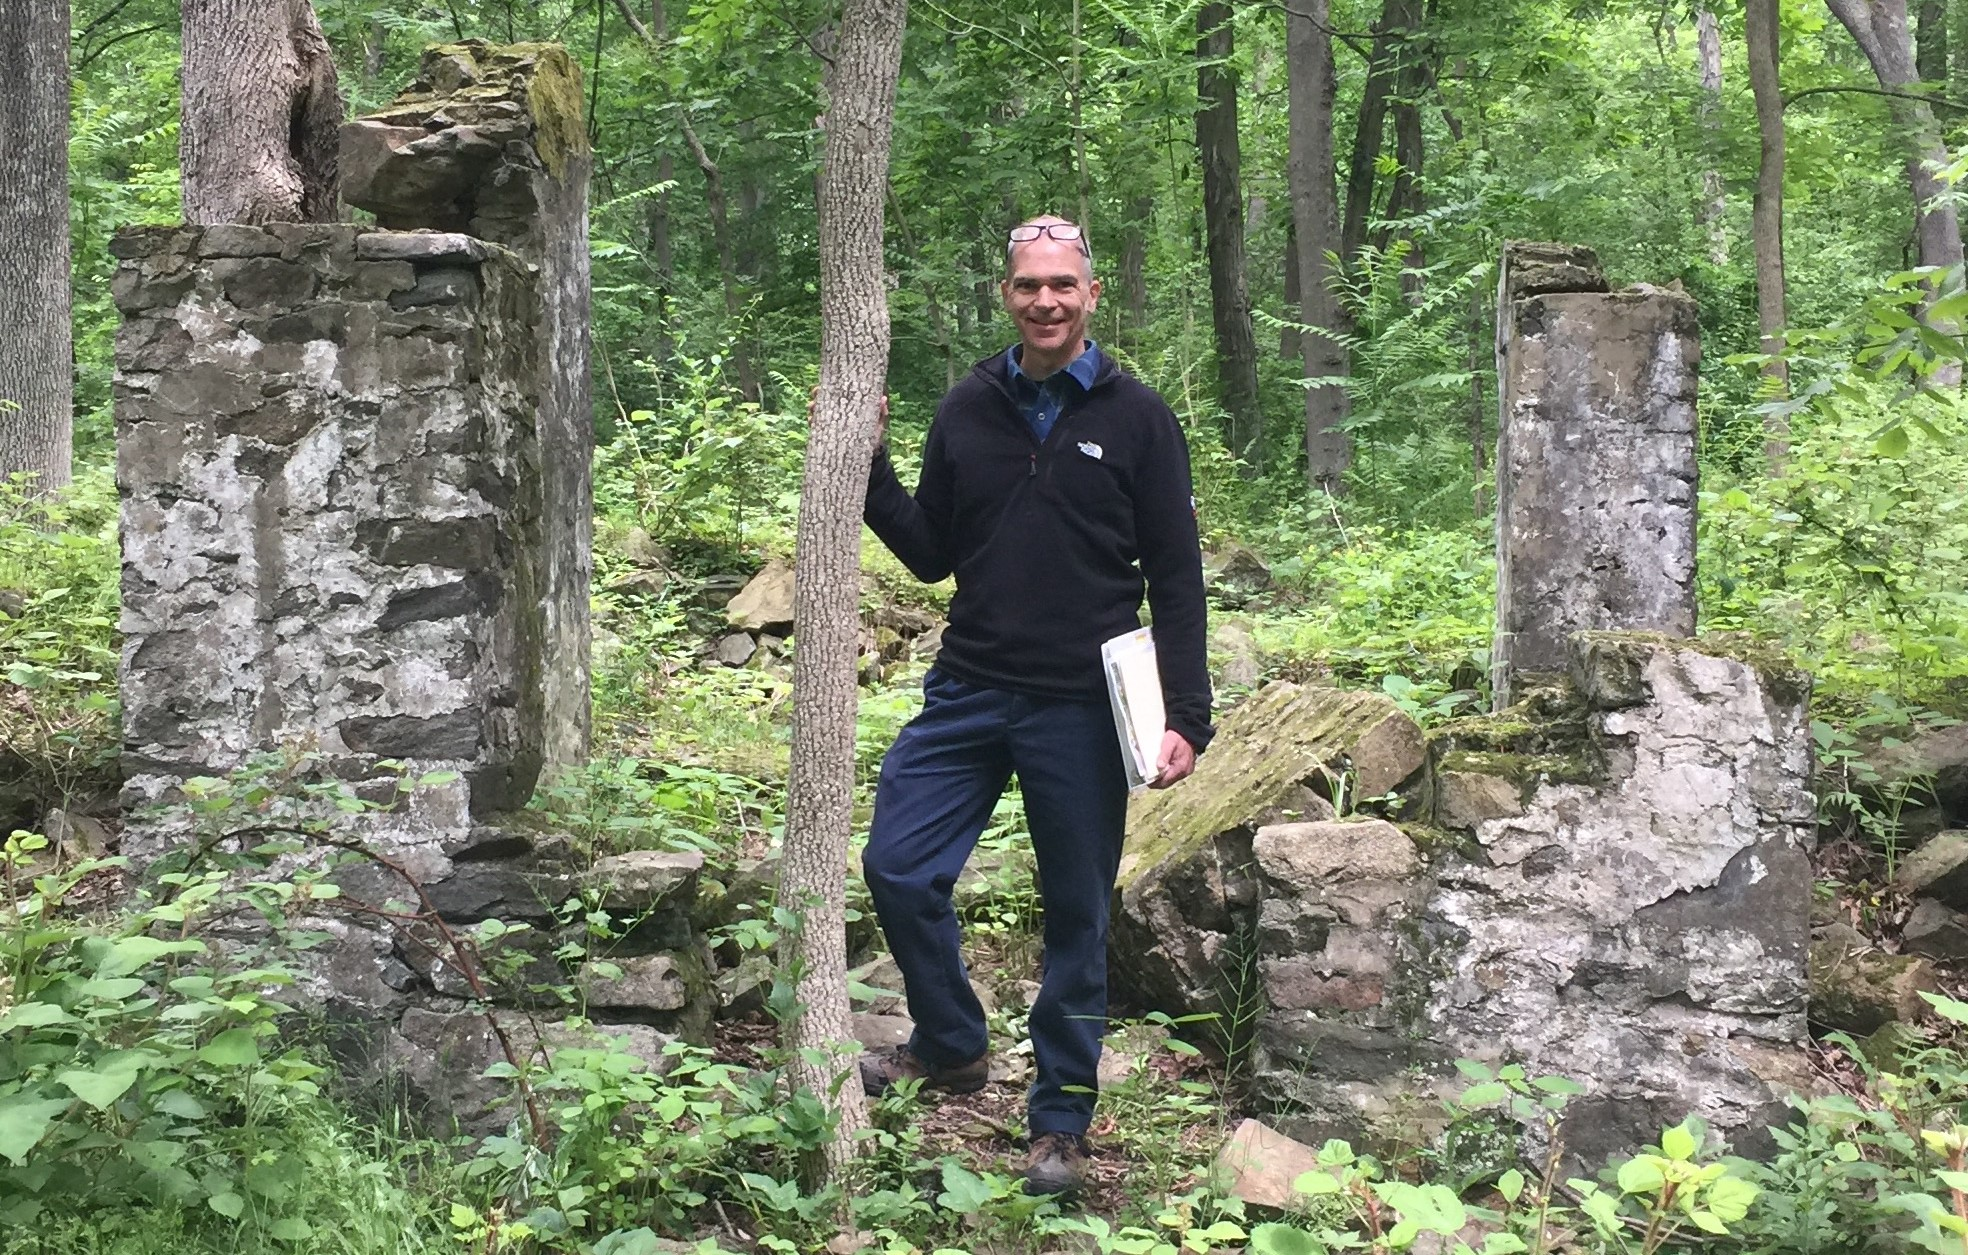 Research at iron forge ruins in Hibernia Park.